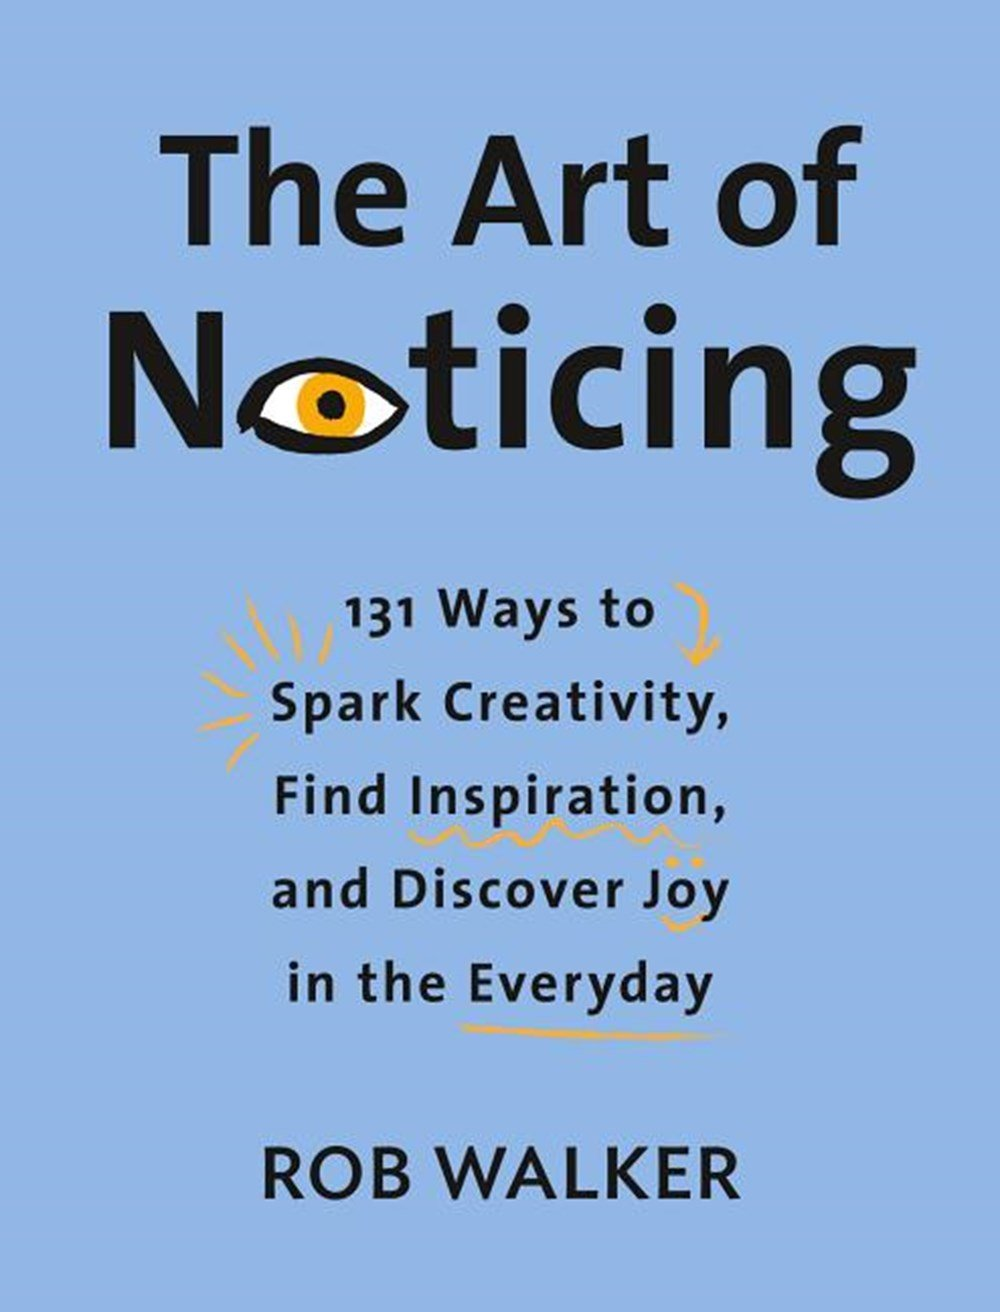 The Art of Noticing 131 Ways to Spark Creativity, Find Inspiration, and Discover Joy in the Everyday